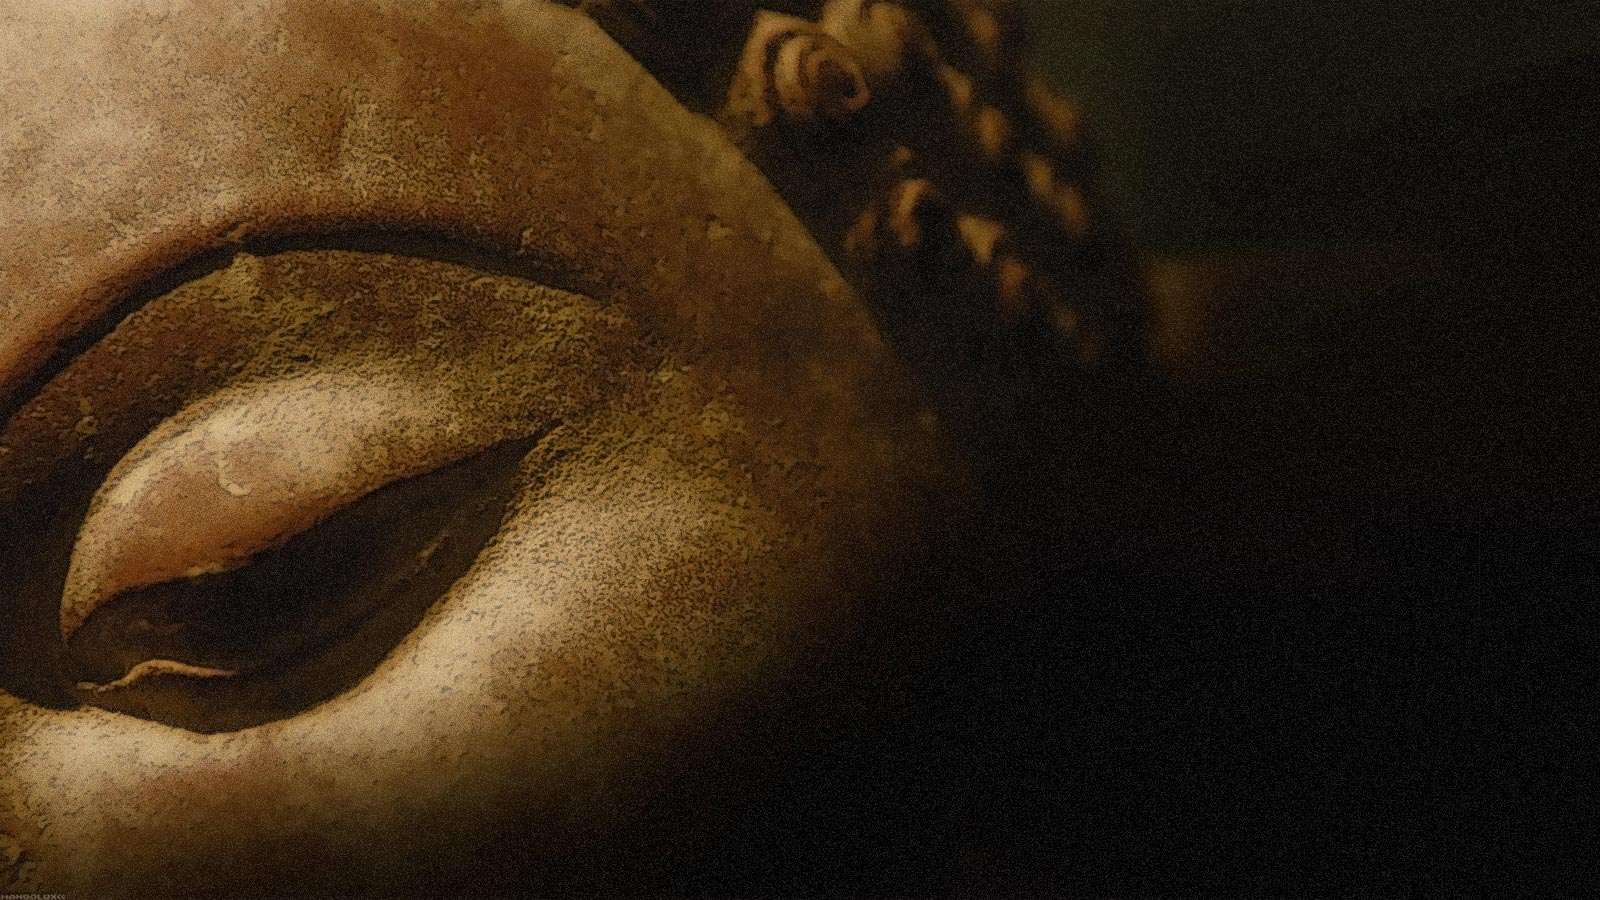 DOWNLOAD Zen Tao   Buddha Gotama Siddhartha Meditation Wallpaper 1600x900